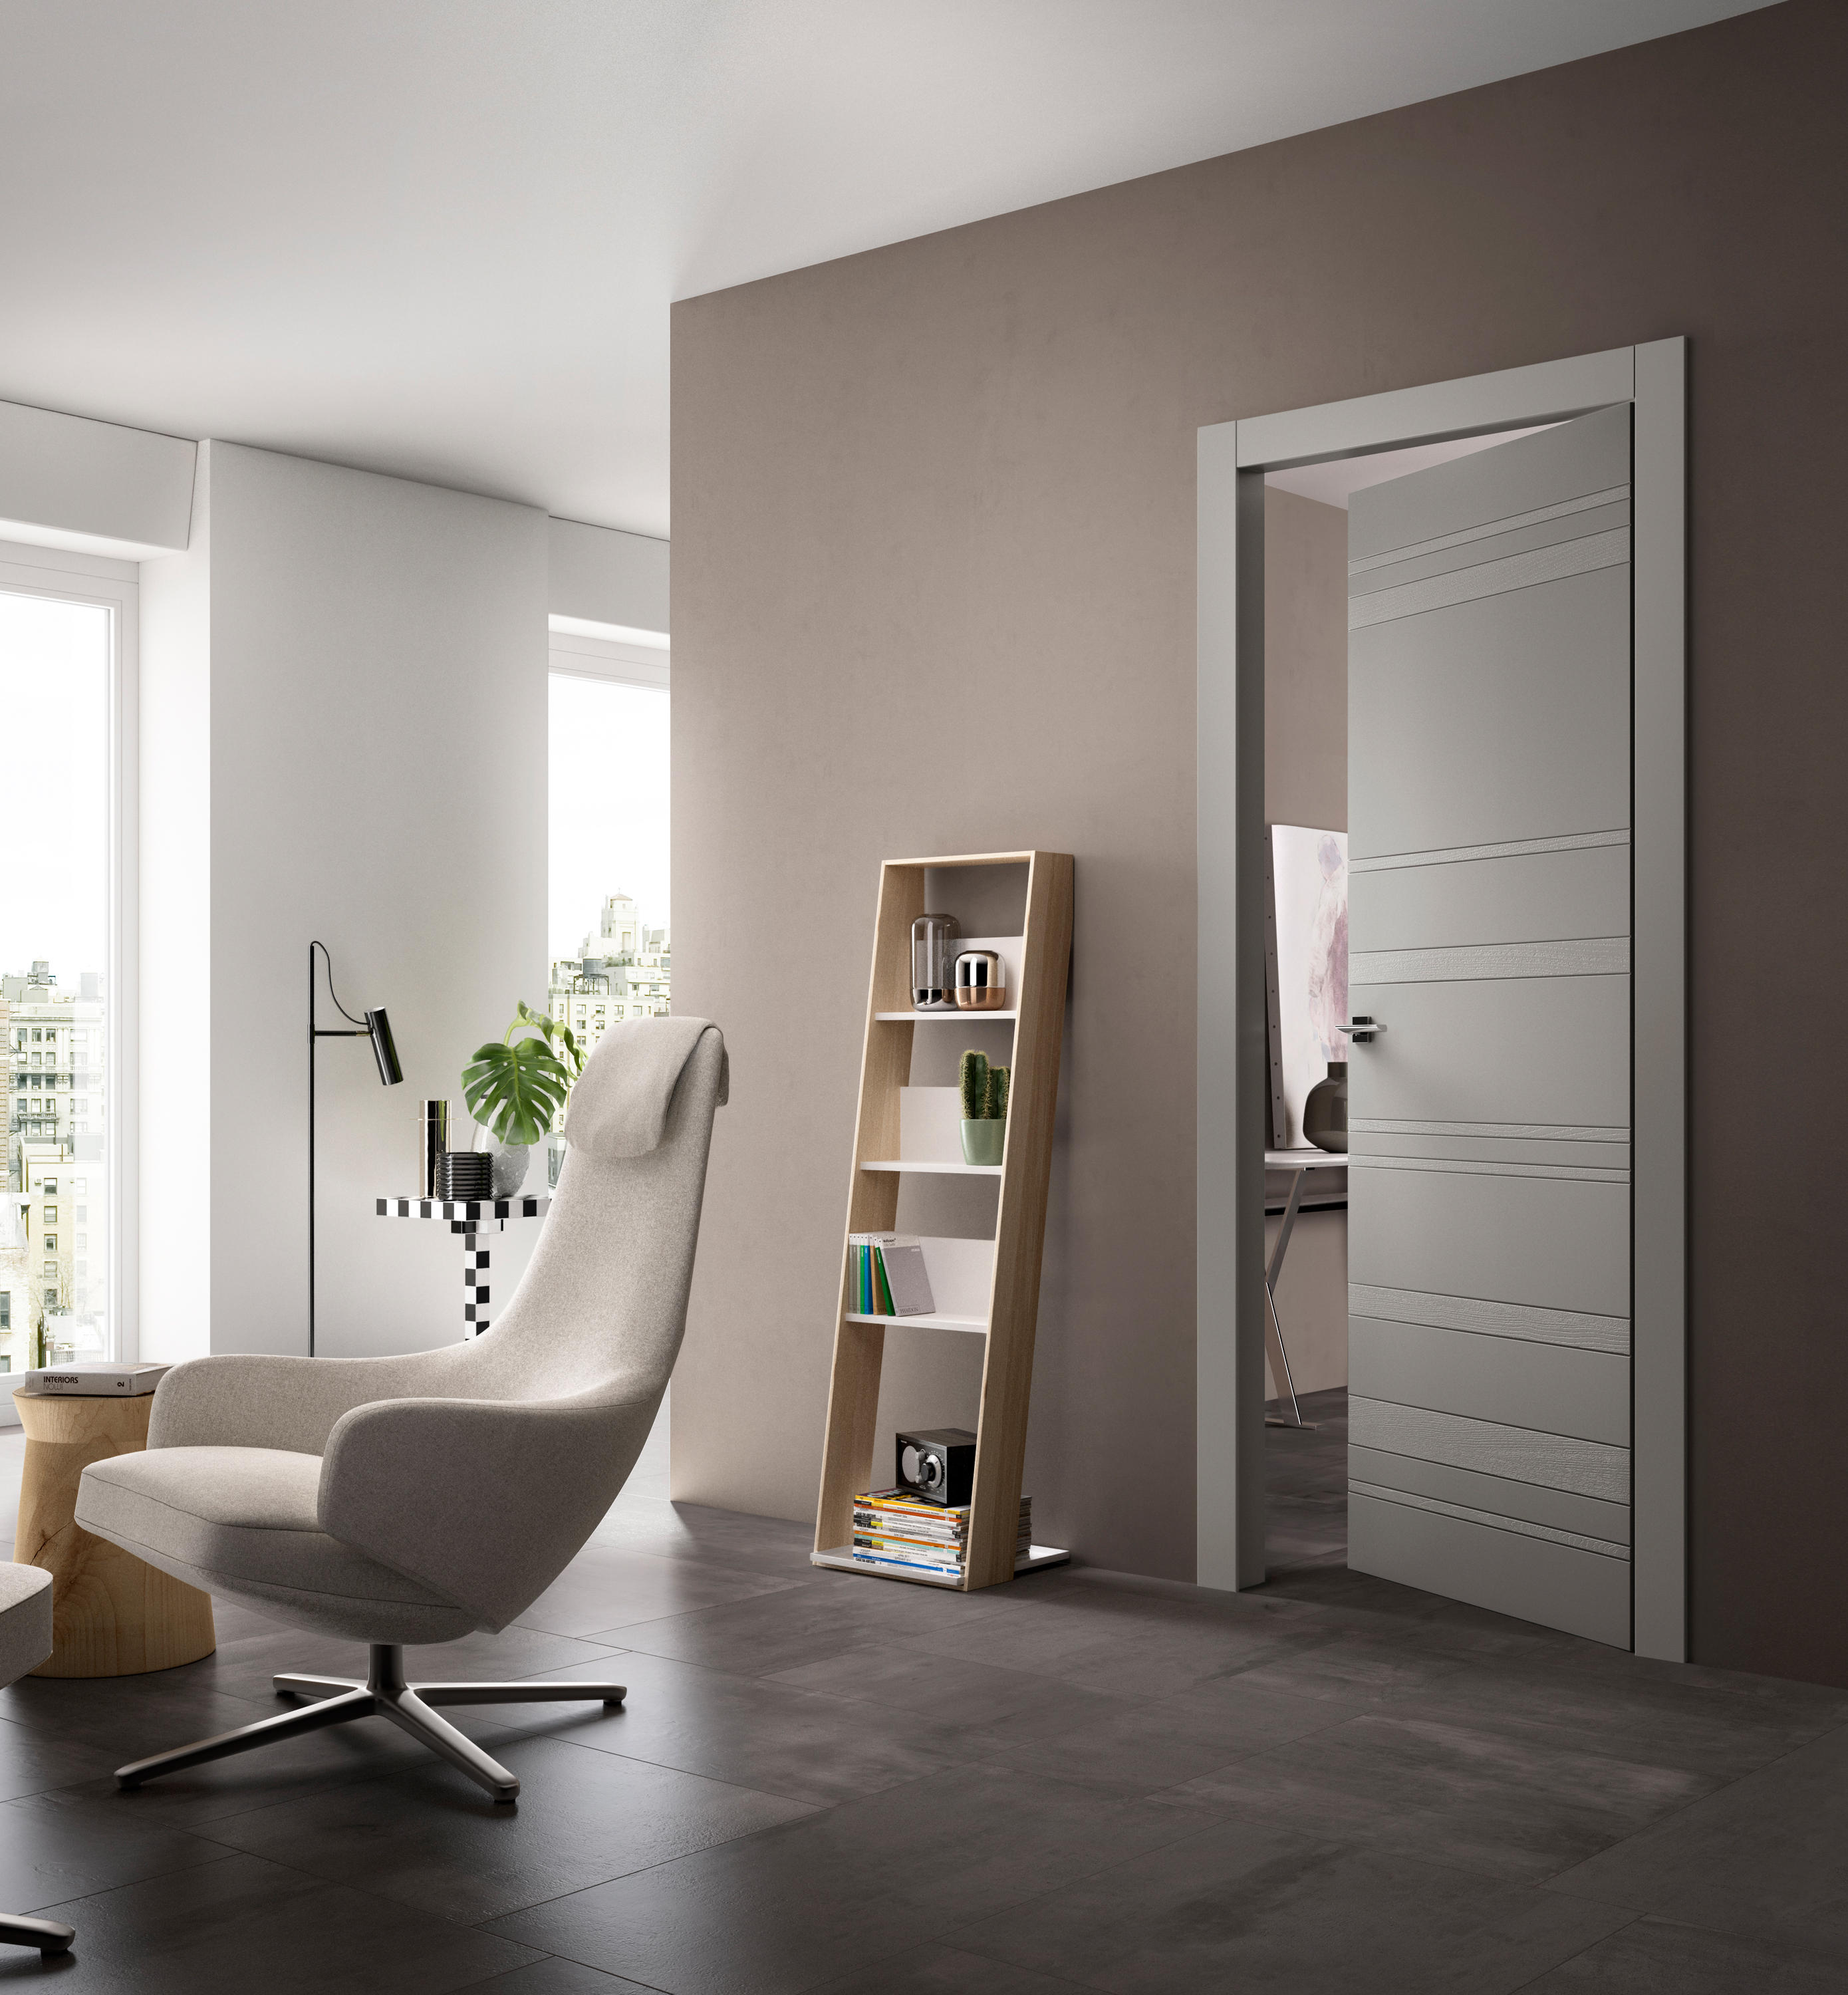 EQUA STYLA - Porte interni FerreroLegno | Architonic